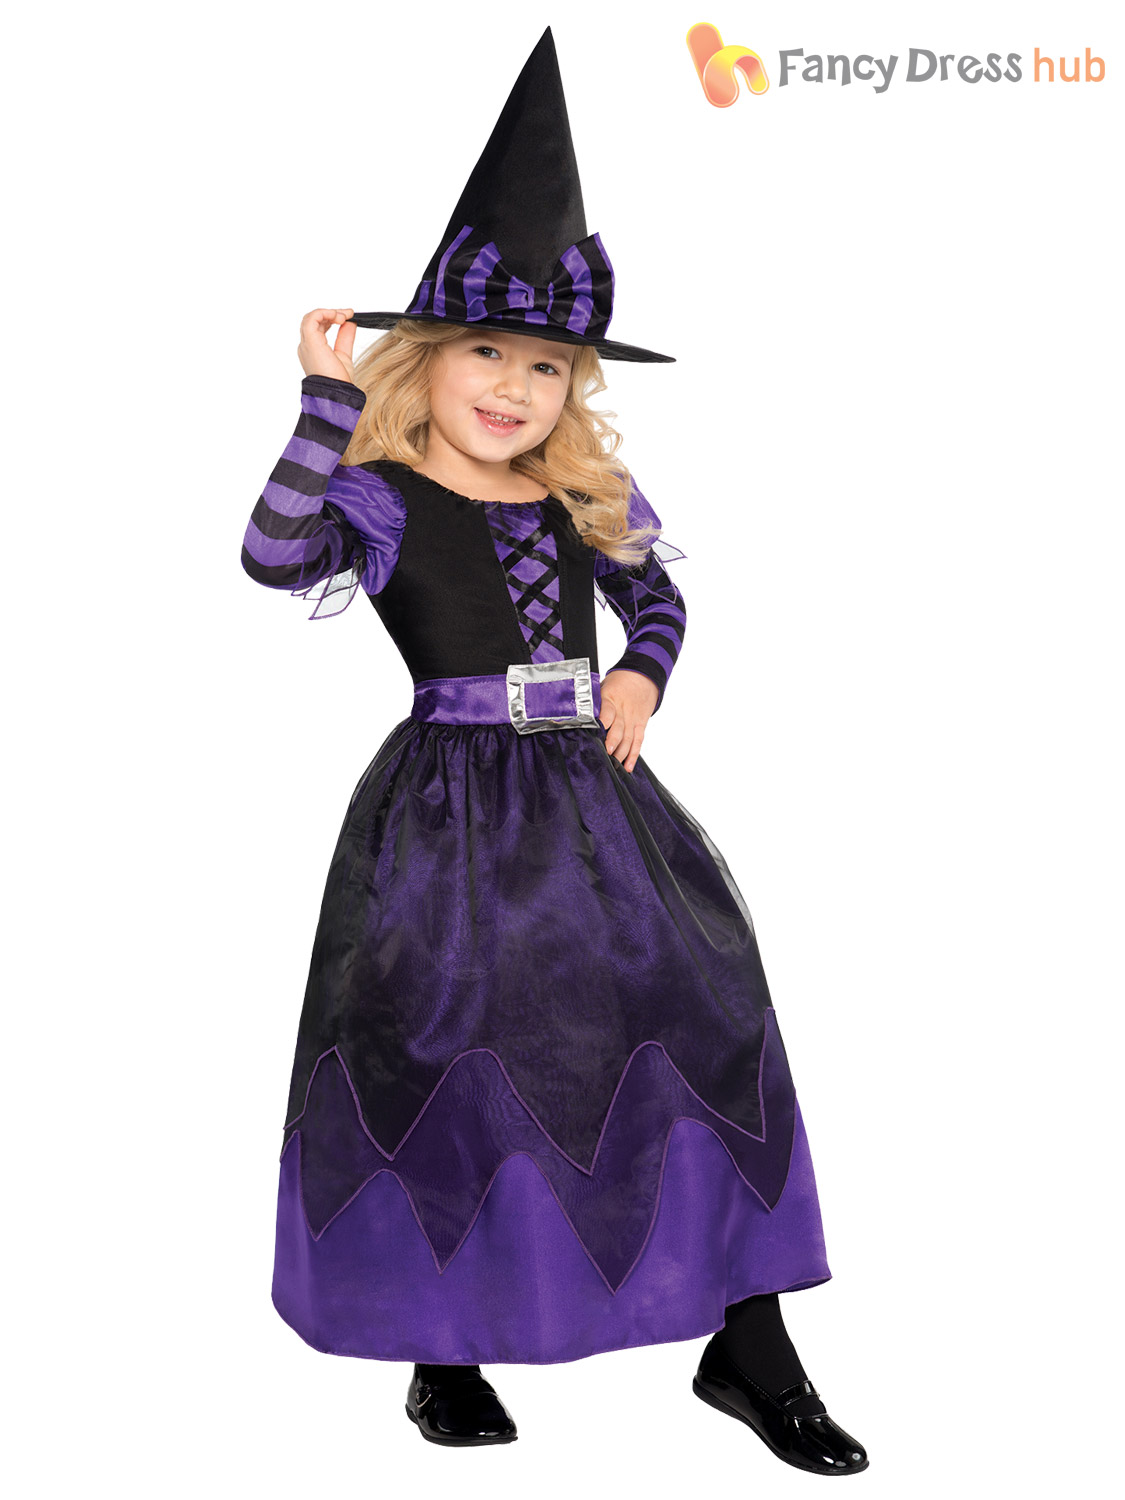 773a1d9377b27 Details about Girls Halloween Witch Costume Toddler Fancy Dress Outfit  Childrens Party Witches